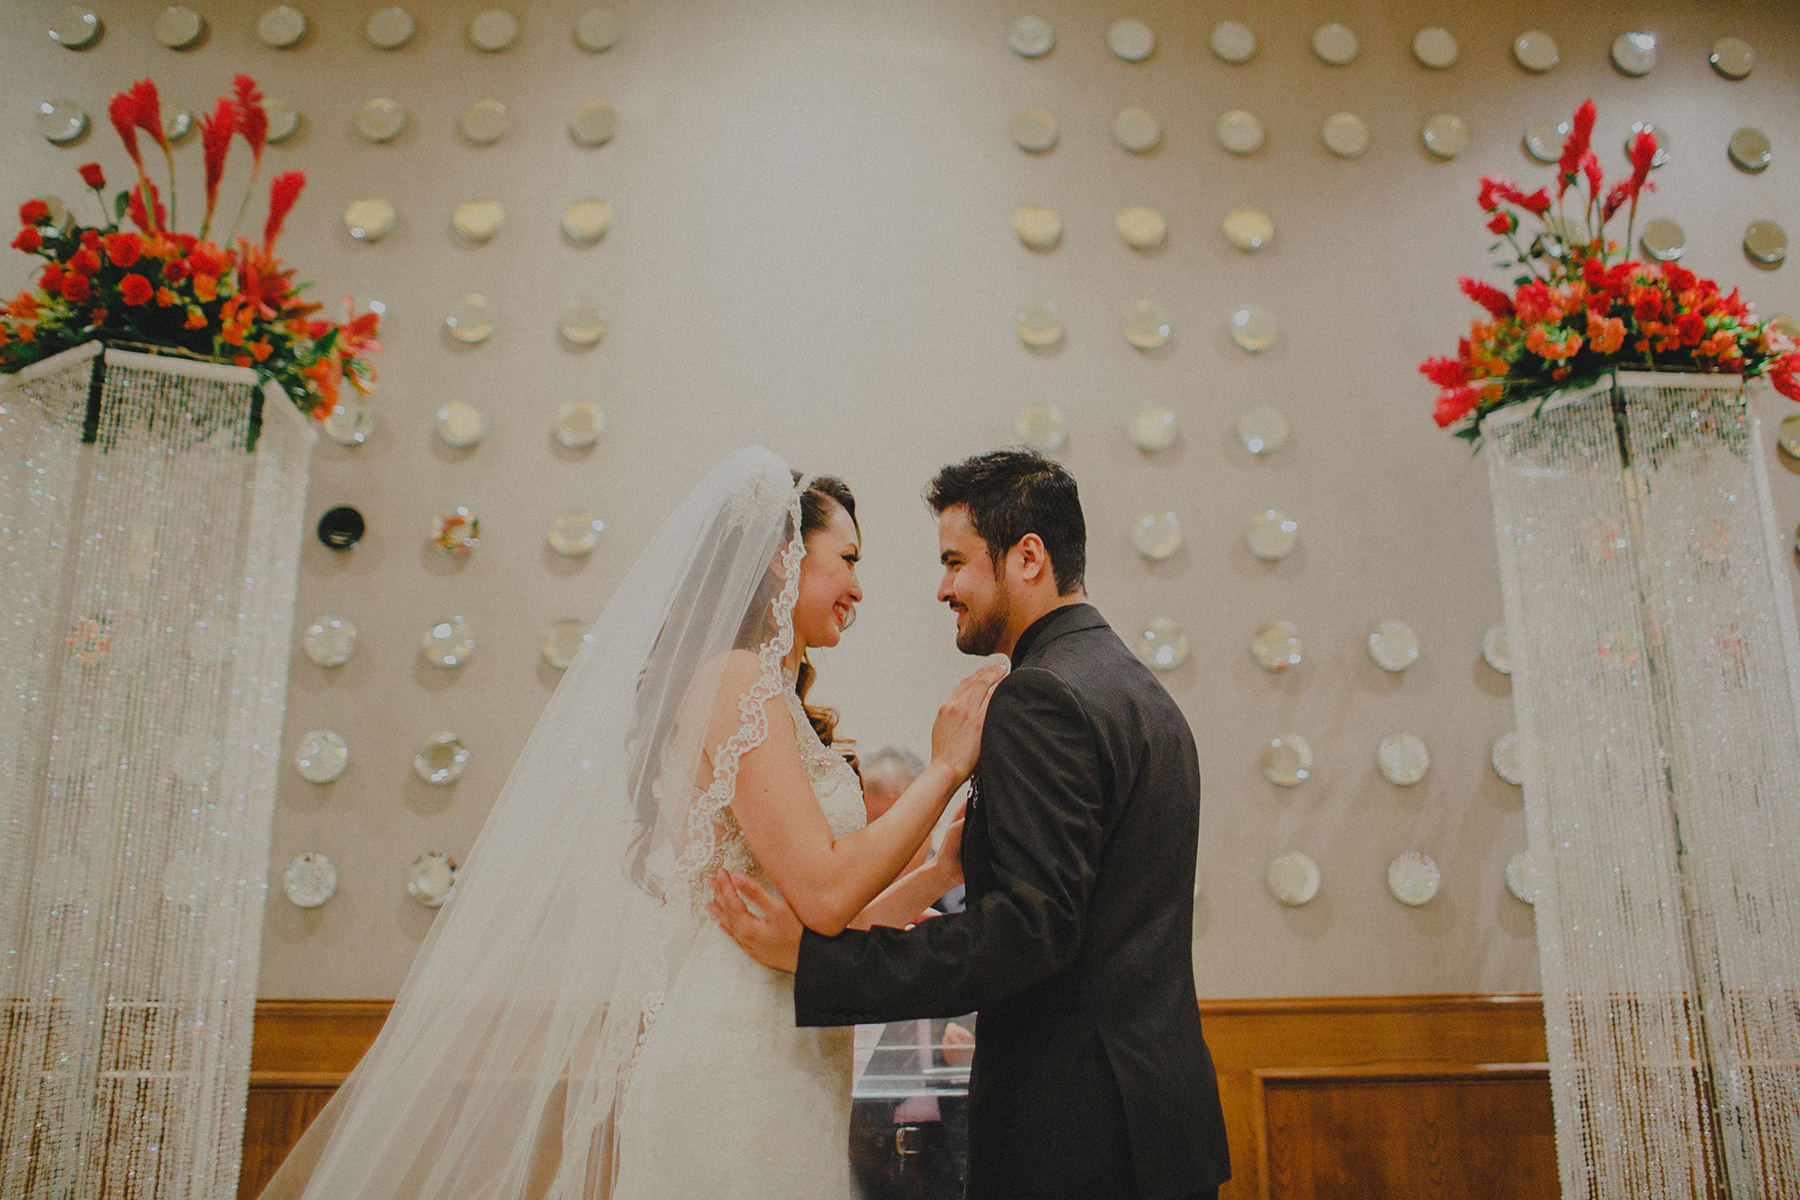 la jose muslim dating site La jose's best 100% free muslim girls dating site meet thousands of single muslim women in la jose with mingle2's free personal ads and chat rooms our network of muslim women in la jose is.